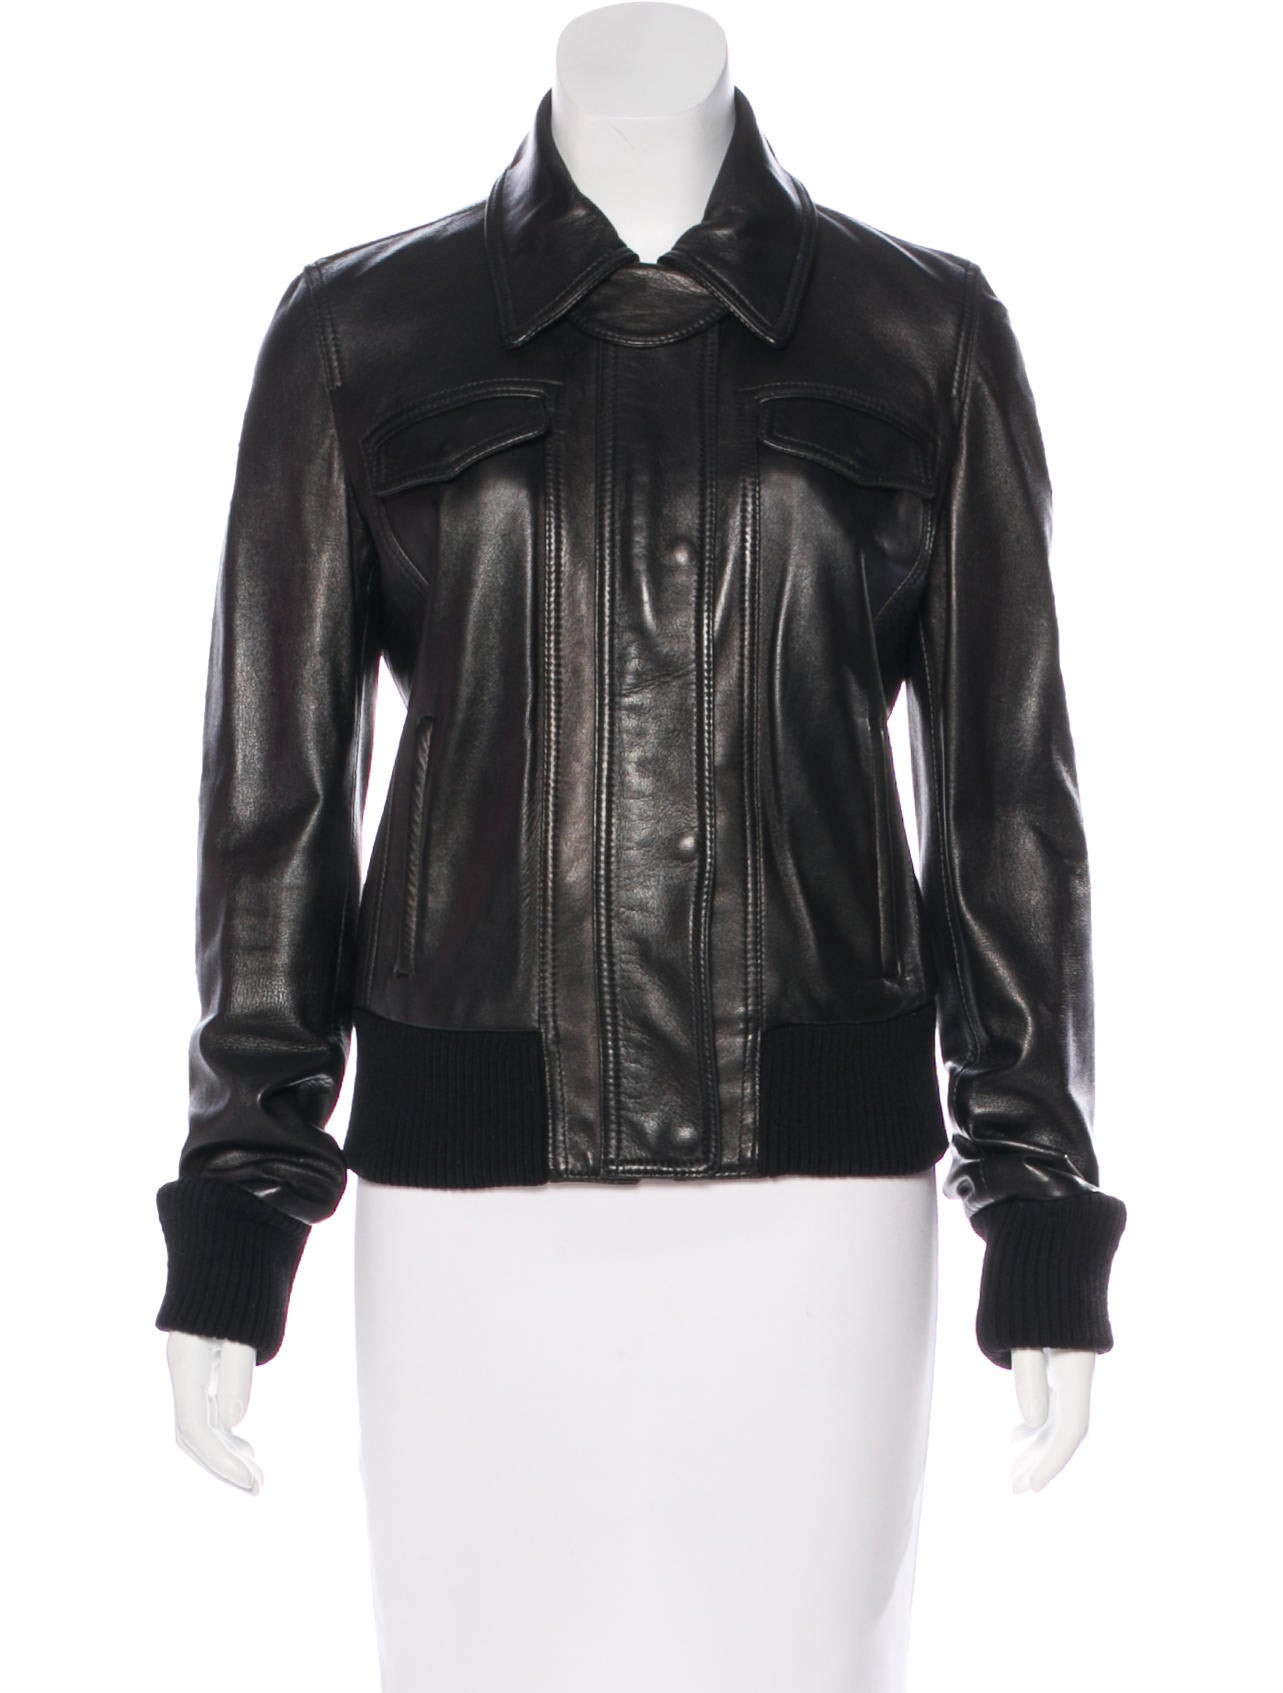 This is the perfect leather jacket—it feels soft yet looks rugged. Plus it features a built in zip-out lining for comfort. You are sure to look sharp in this leather jacket and you can wear it with almost anything.